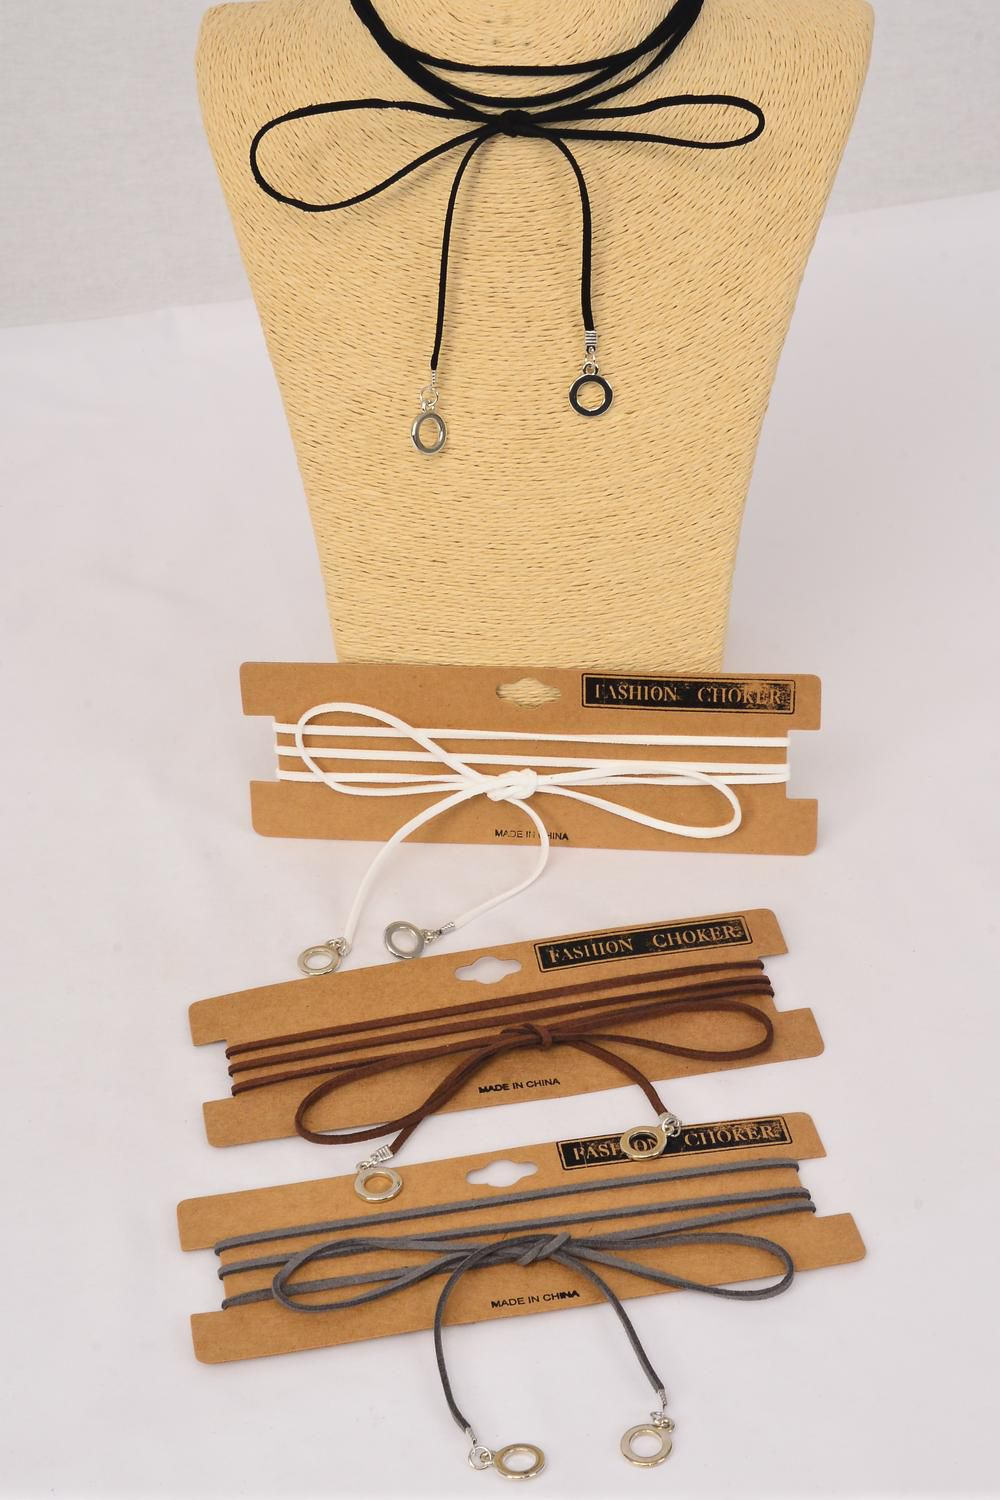 Necklace Faux Suede Cord String Wrap Bolo Tie Choker Metal Accent On Bottom/DZ Color-3 Black,3 Brown,3 Gray,3 White,4 Color Asst,Display Card & OPP Bag & UPC Code